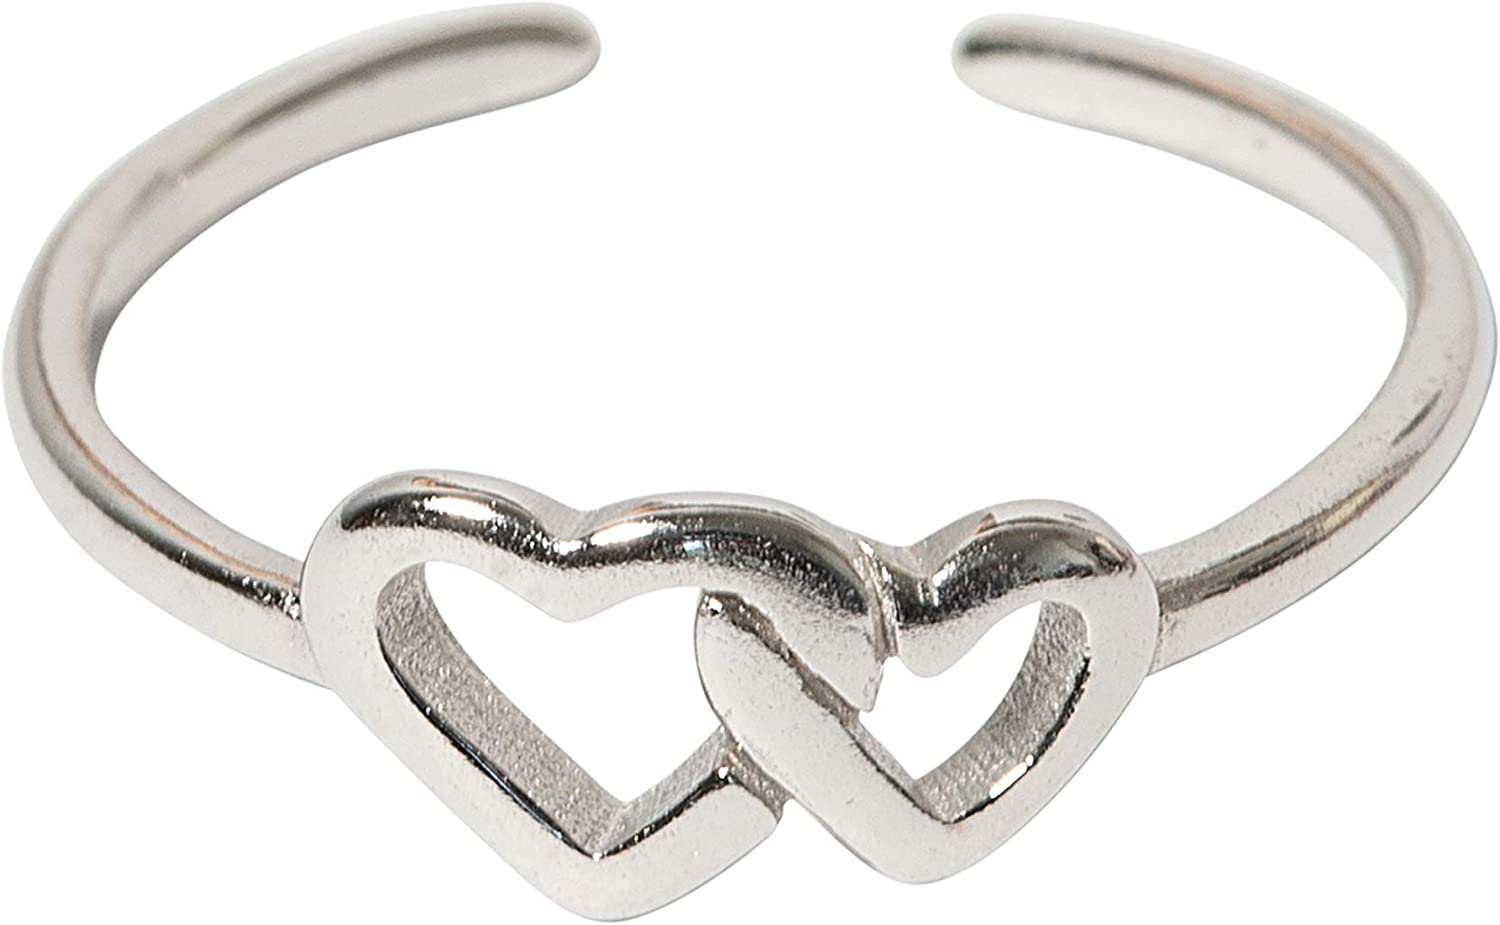 USA Seller Big Heart Toe Ring Sterling Silver 925 Plain Best Price Jewelry Gift